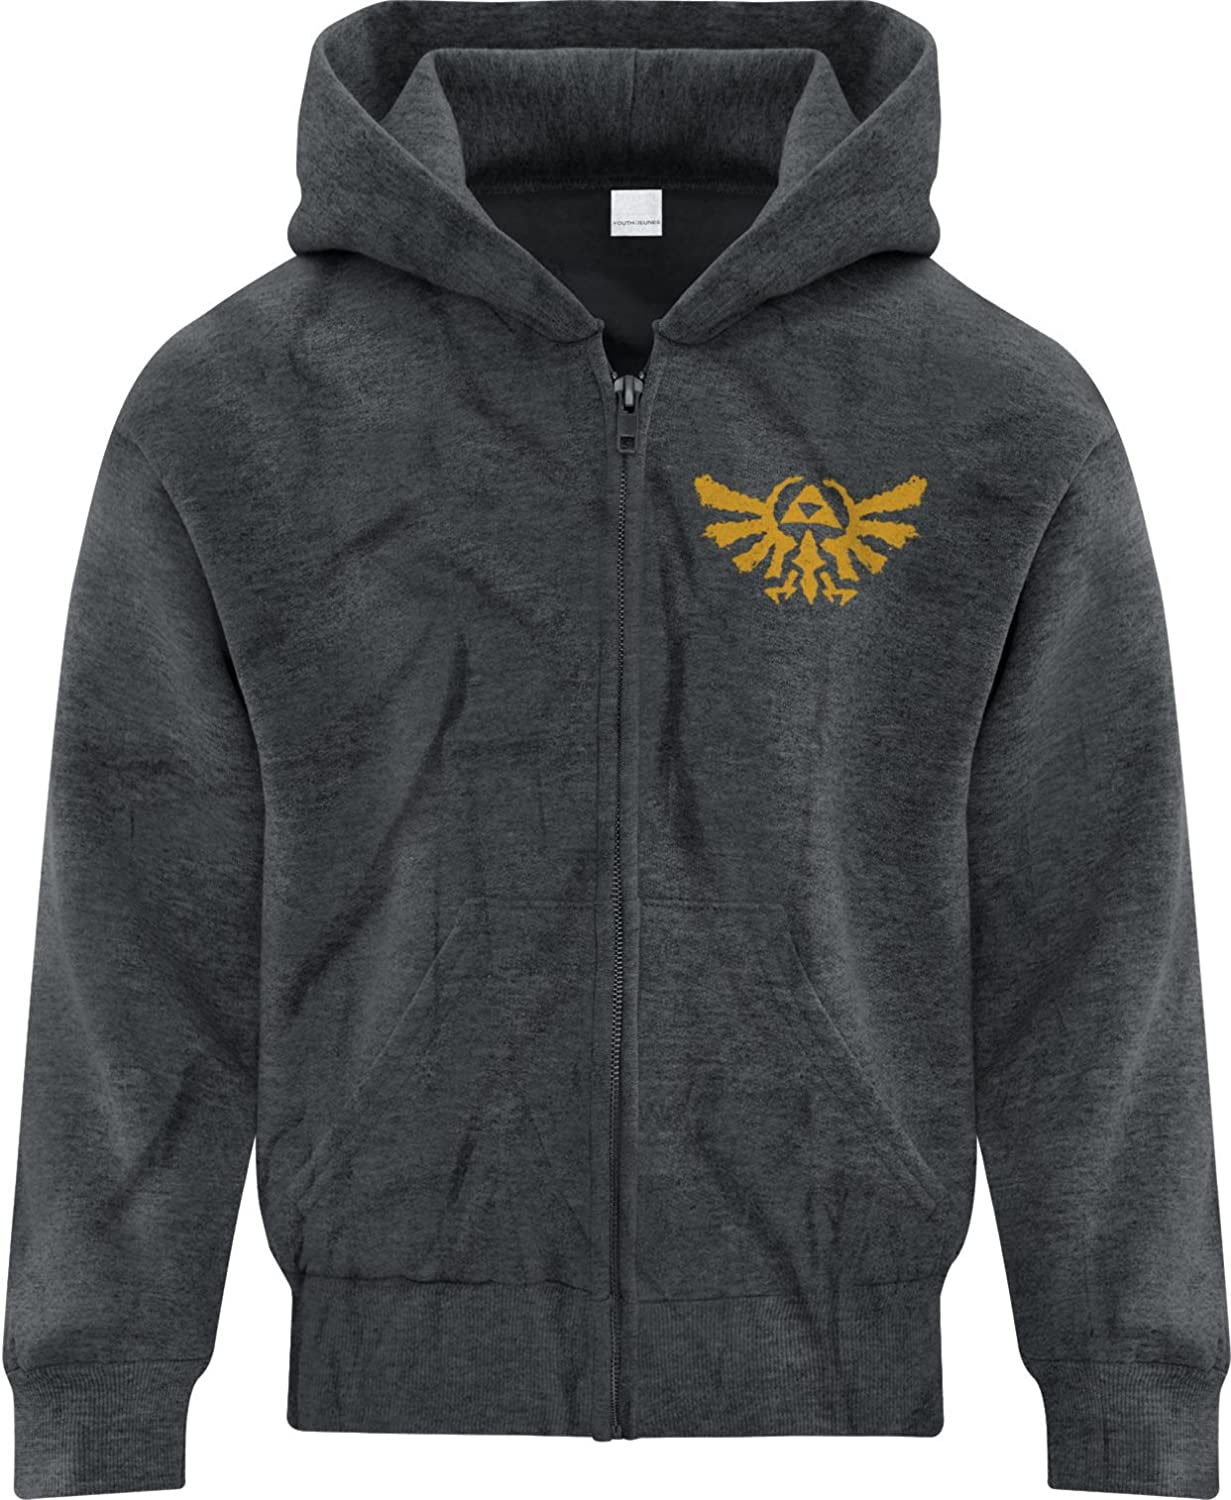 BSW Youth Boys Rorschach Zelda Triforce The Golden Power Zip Hoodie 1246-1HSYZ